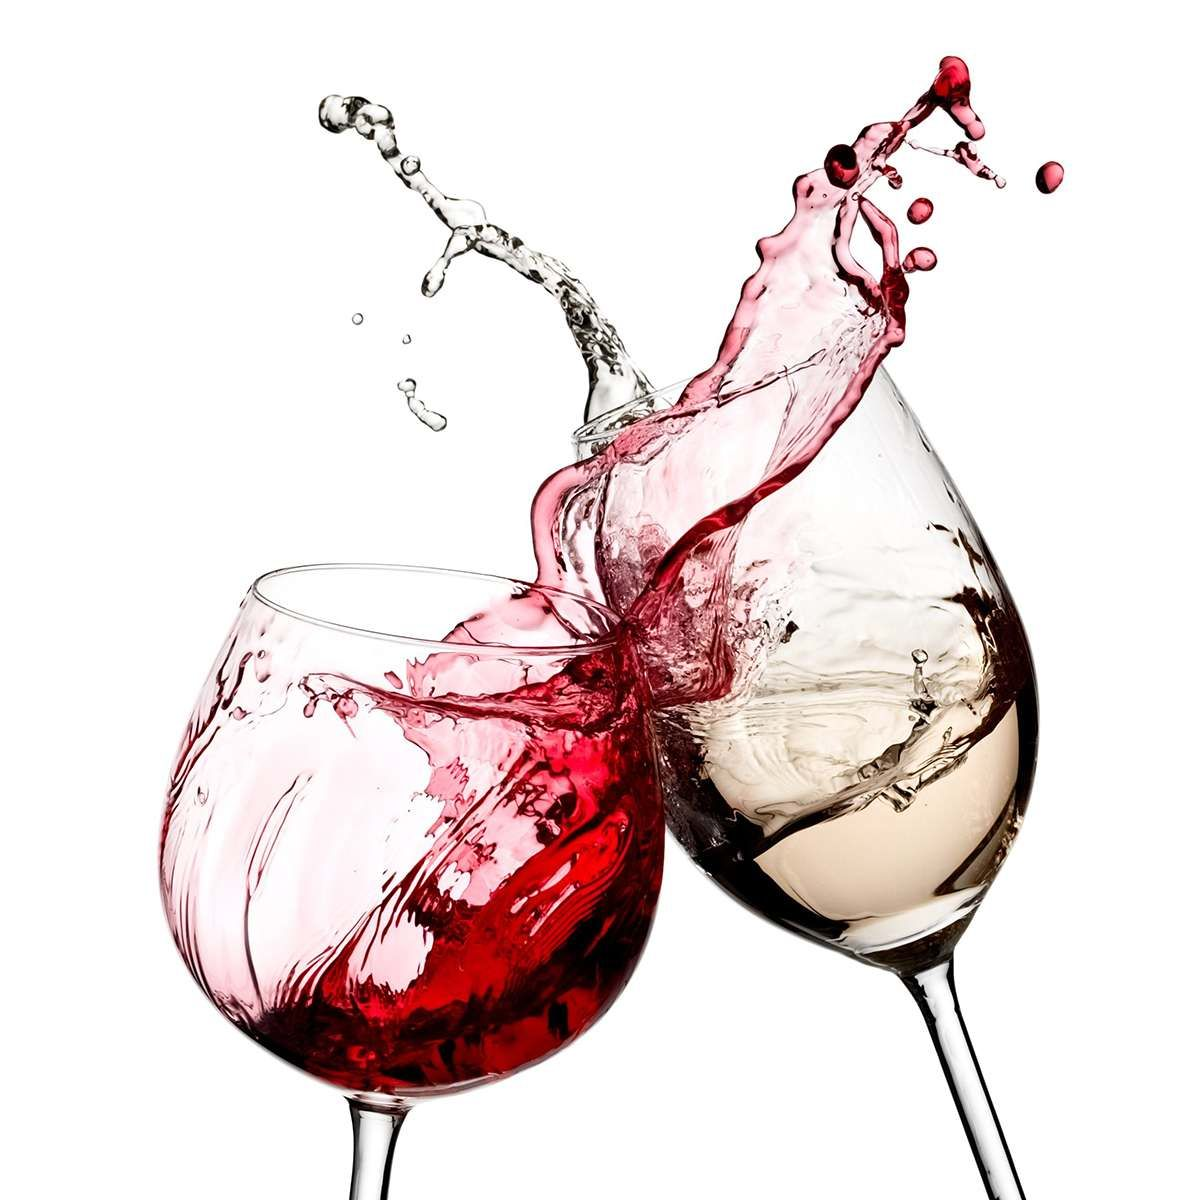 Red White Wine Glasses Wall Art Canvas Painting Nordic Kitchen Canvas Wall Art Pictures Living Room Bedroom Mural Decoration Un In 2020 Glass Wall Art Wall Art Canvas Painting Wall Art Pictures